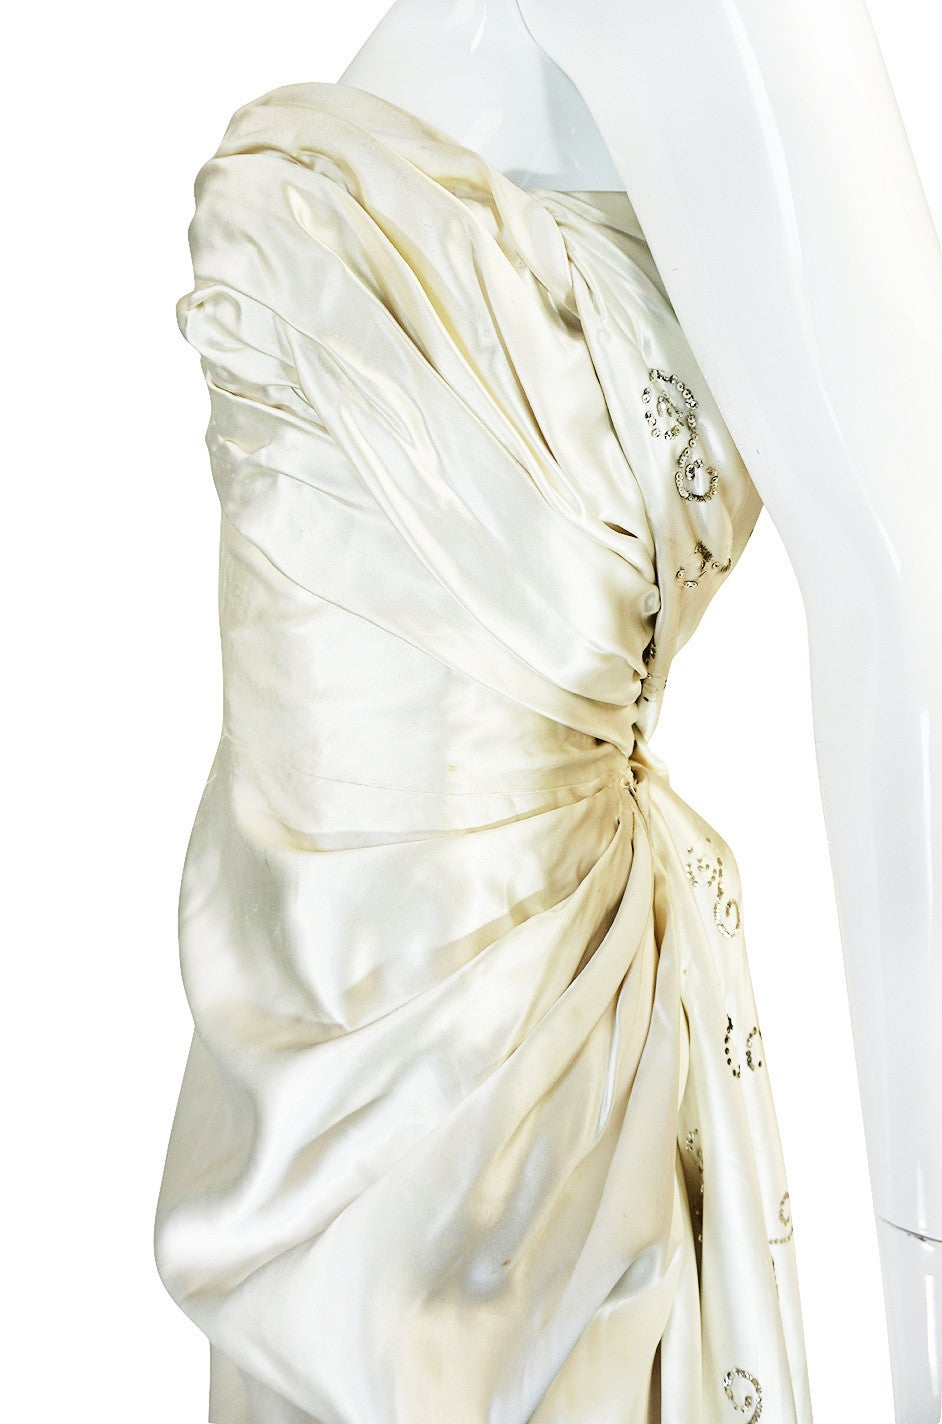 c1959 Maggy Rouf Haute Couture Champagne Silk Gown For Sale 2